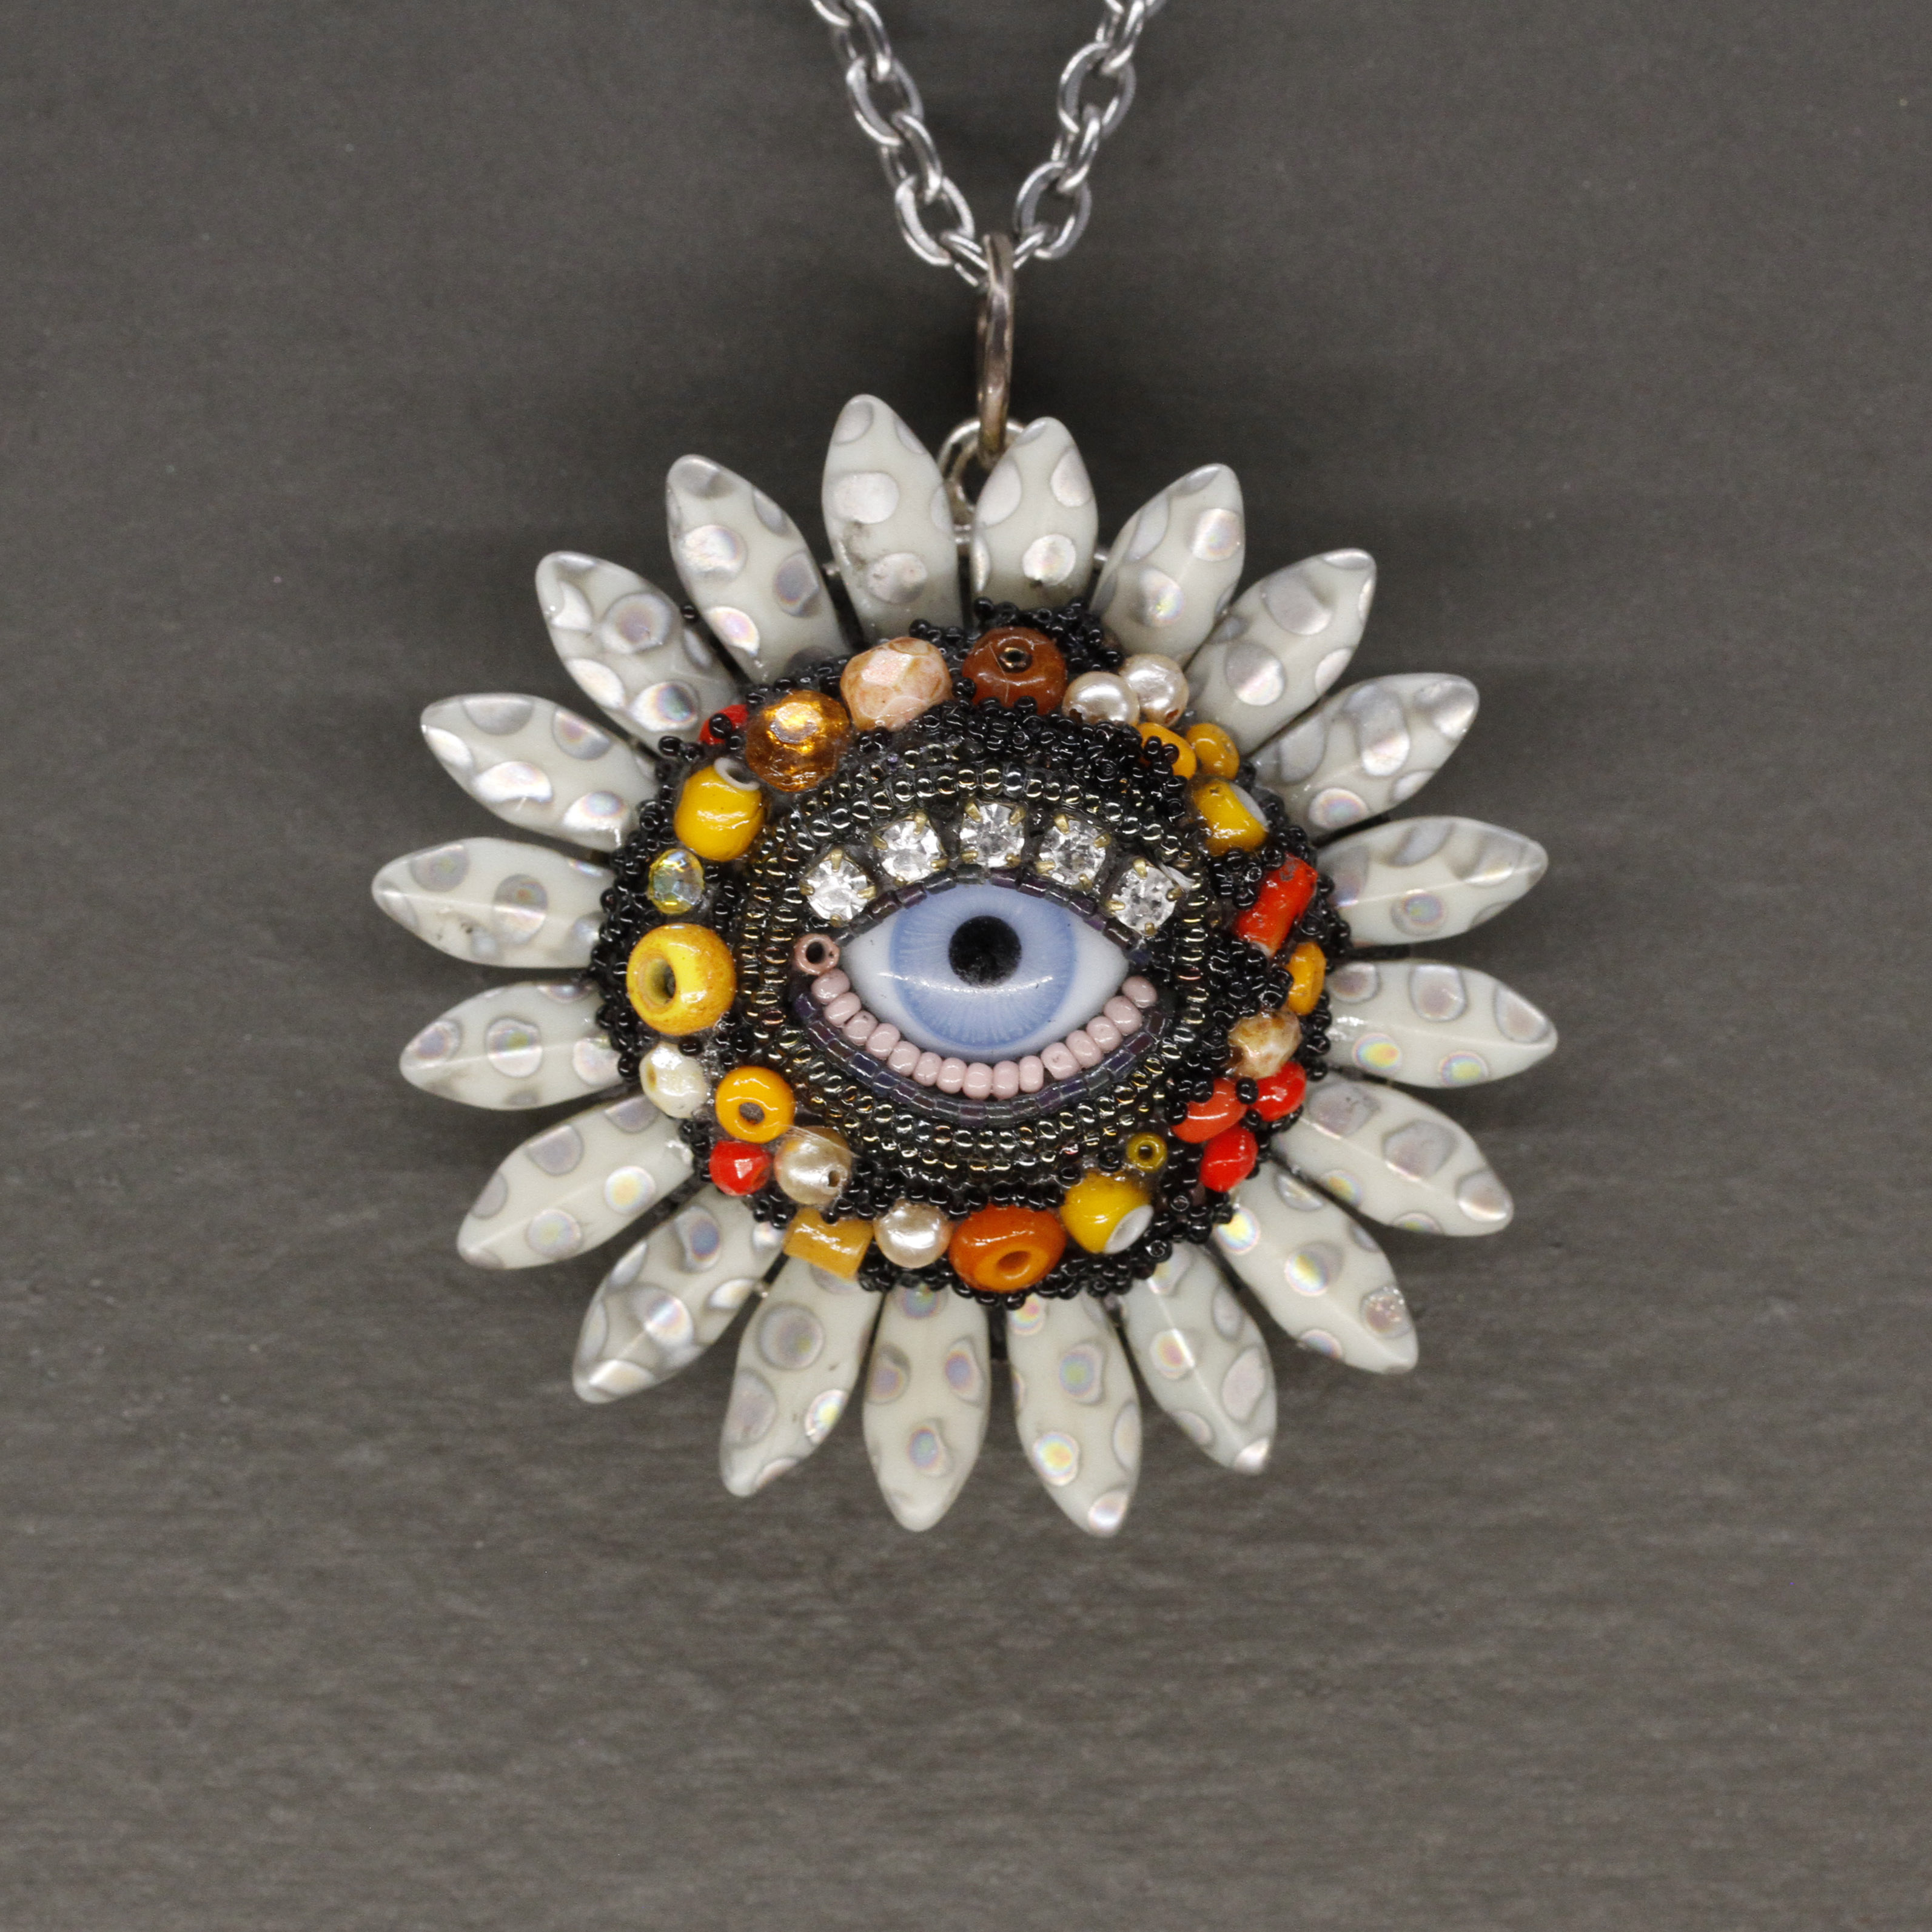 Eye flower pendant 1 gallery two nola eye flower pendant 1 mozeypictures Image collections